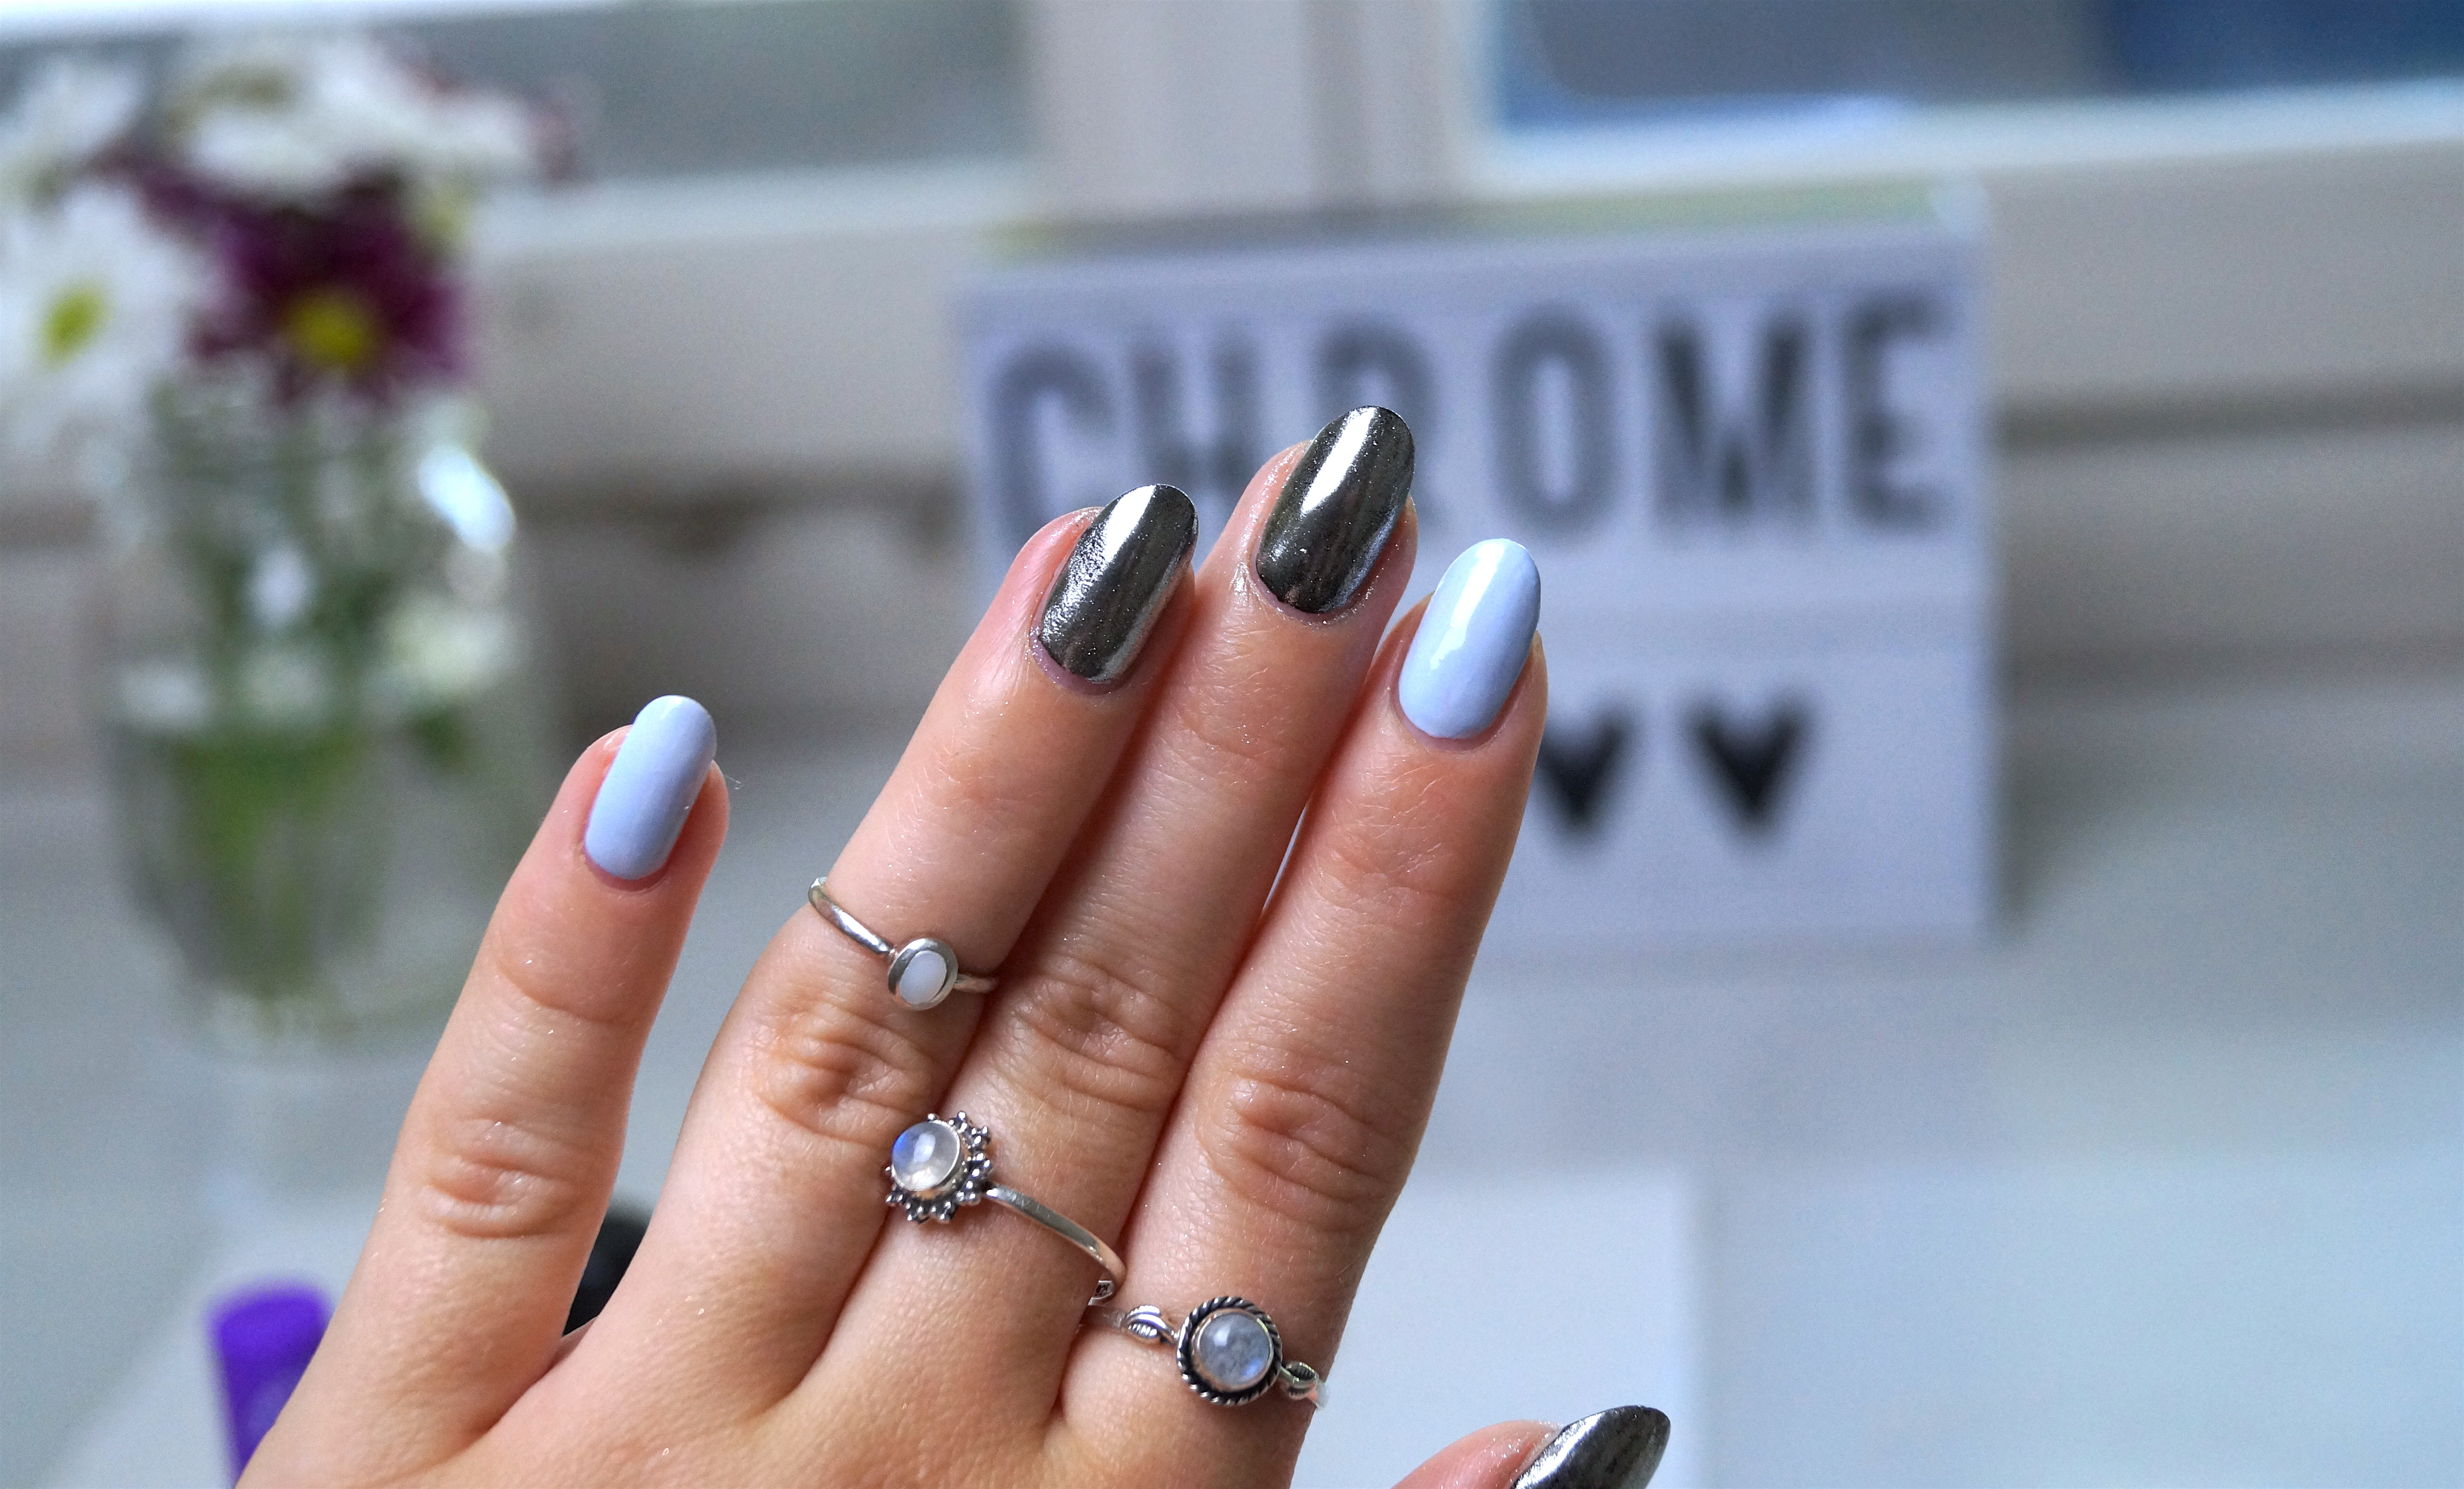 Chrome/ Mirror Nails without gel – A Snippet of Life